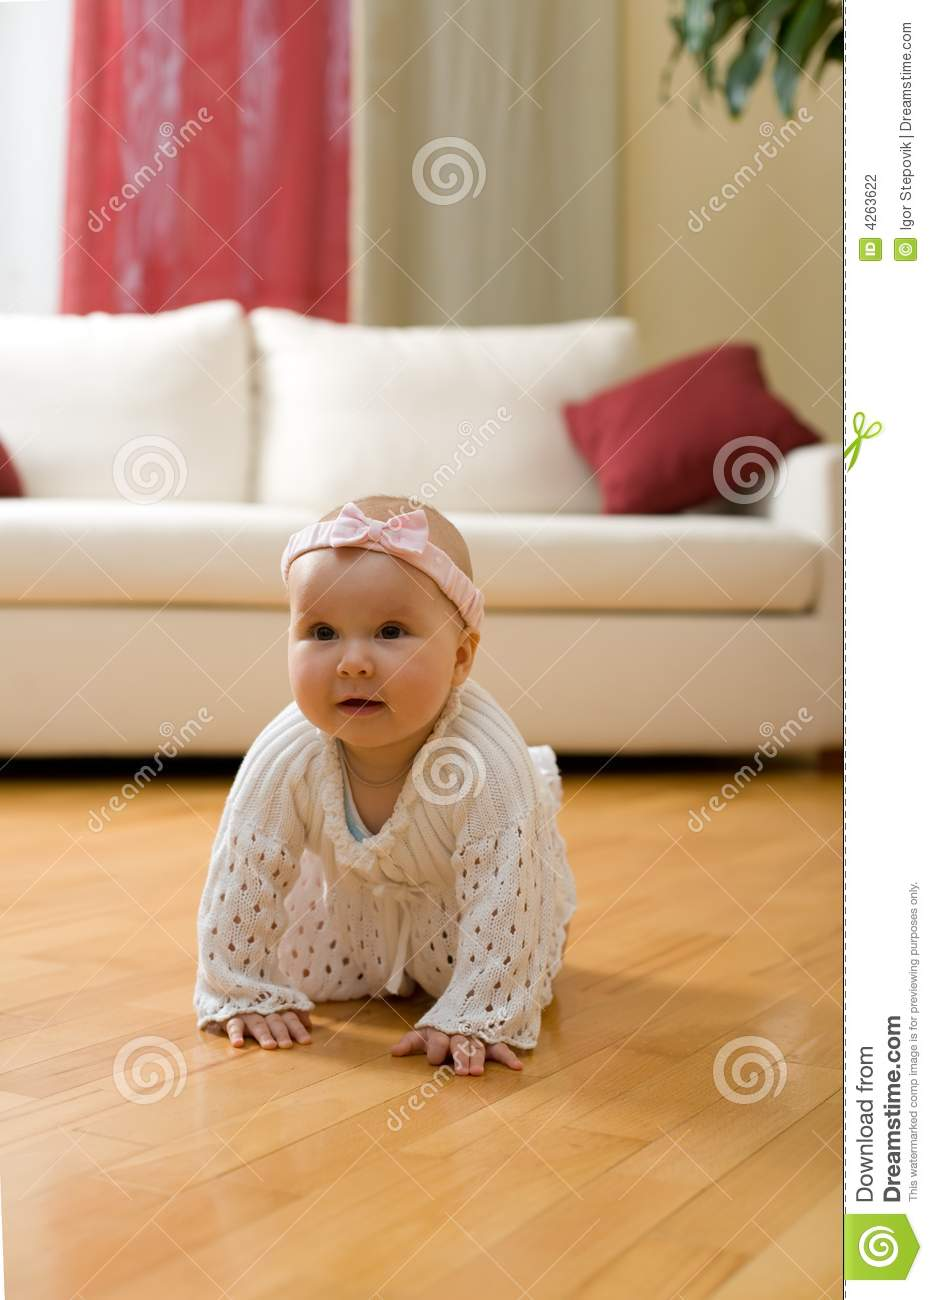 Sofa Orange Baby Girl Crawling On A Floor Stock Photography - Image